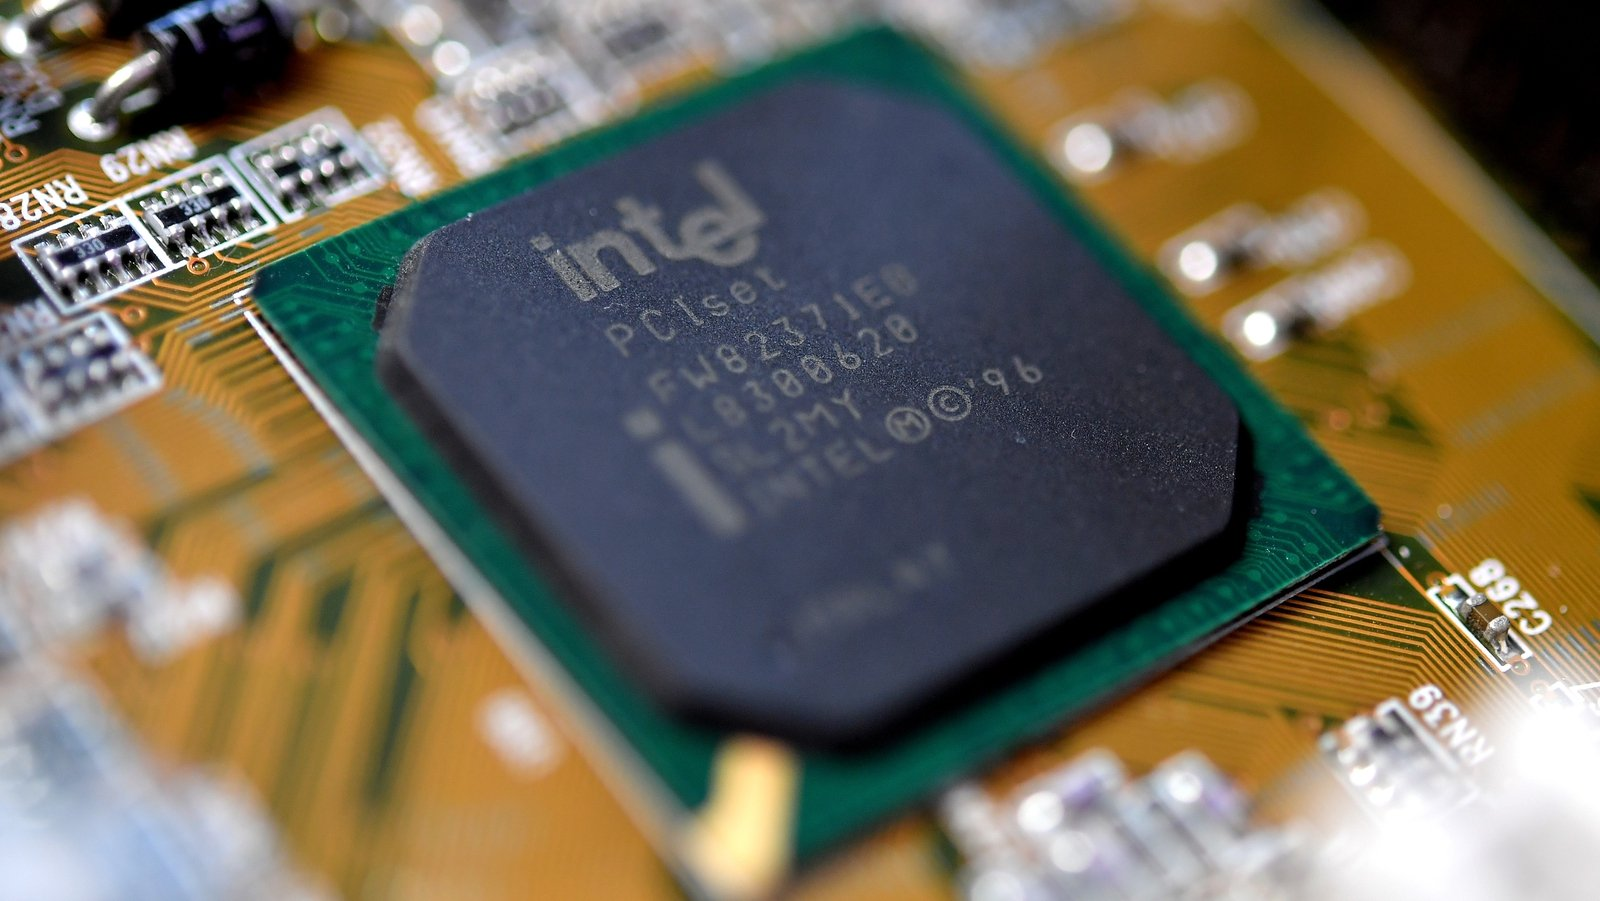 Chip supply shortages could last several years - Intel